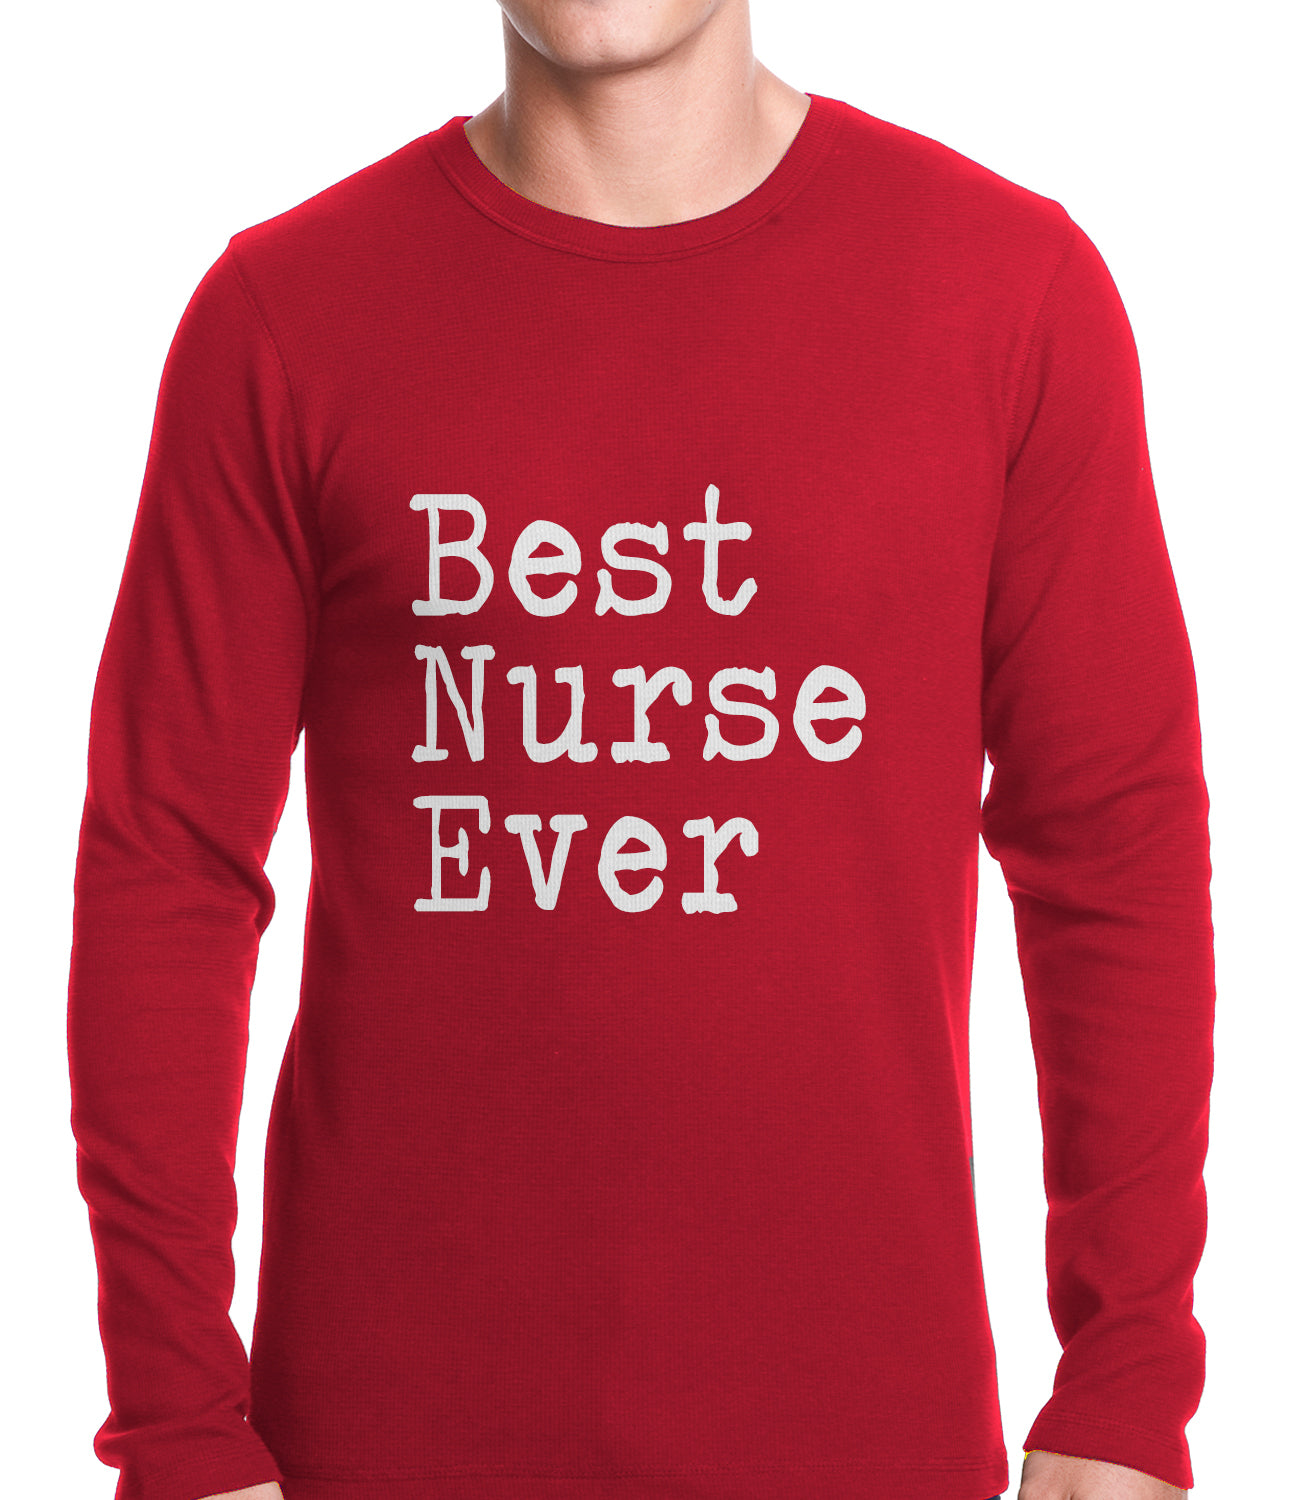 Best Nurse Ever Thermal Shirt